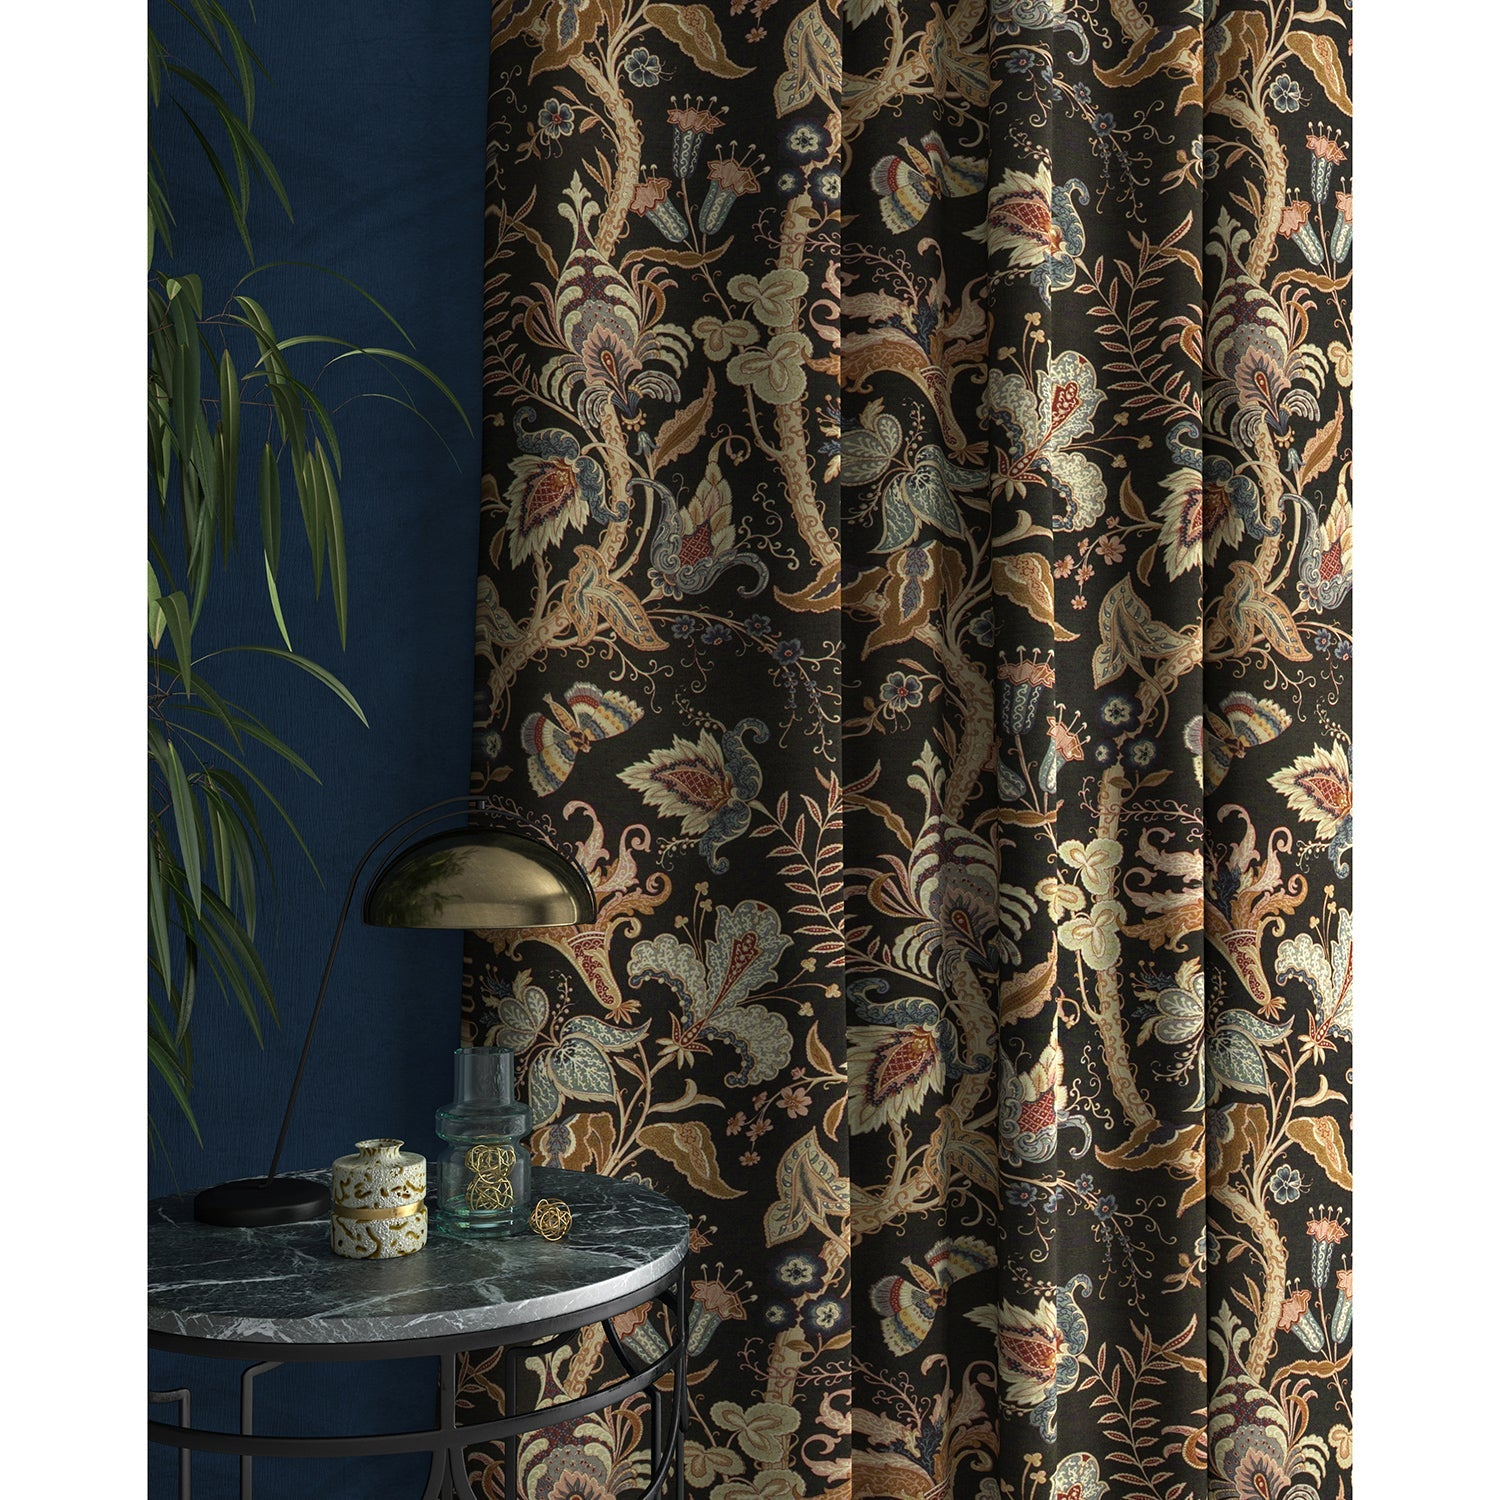 Curtain with a dark grey fabric with stylised floral design